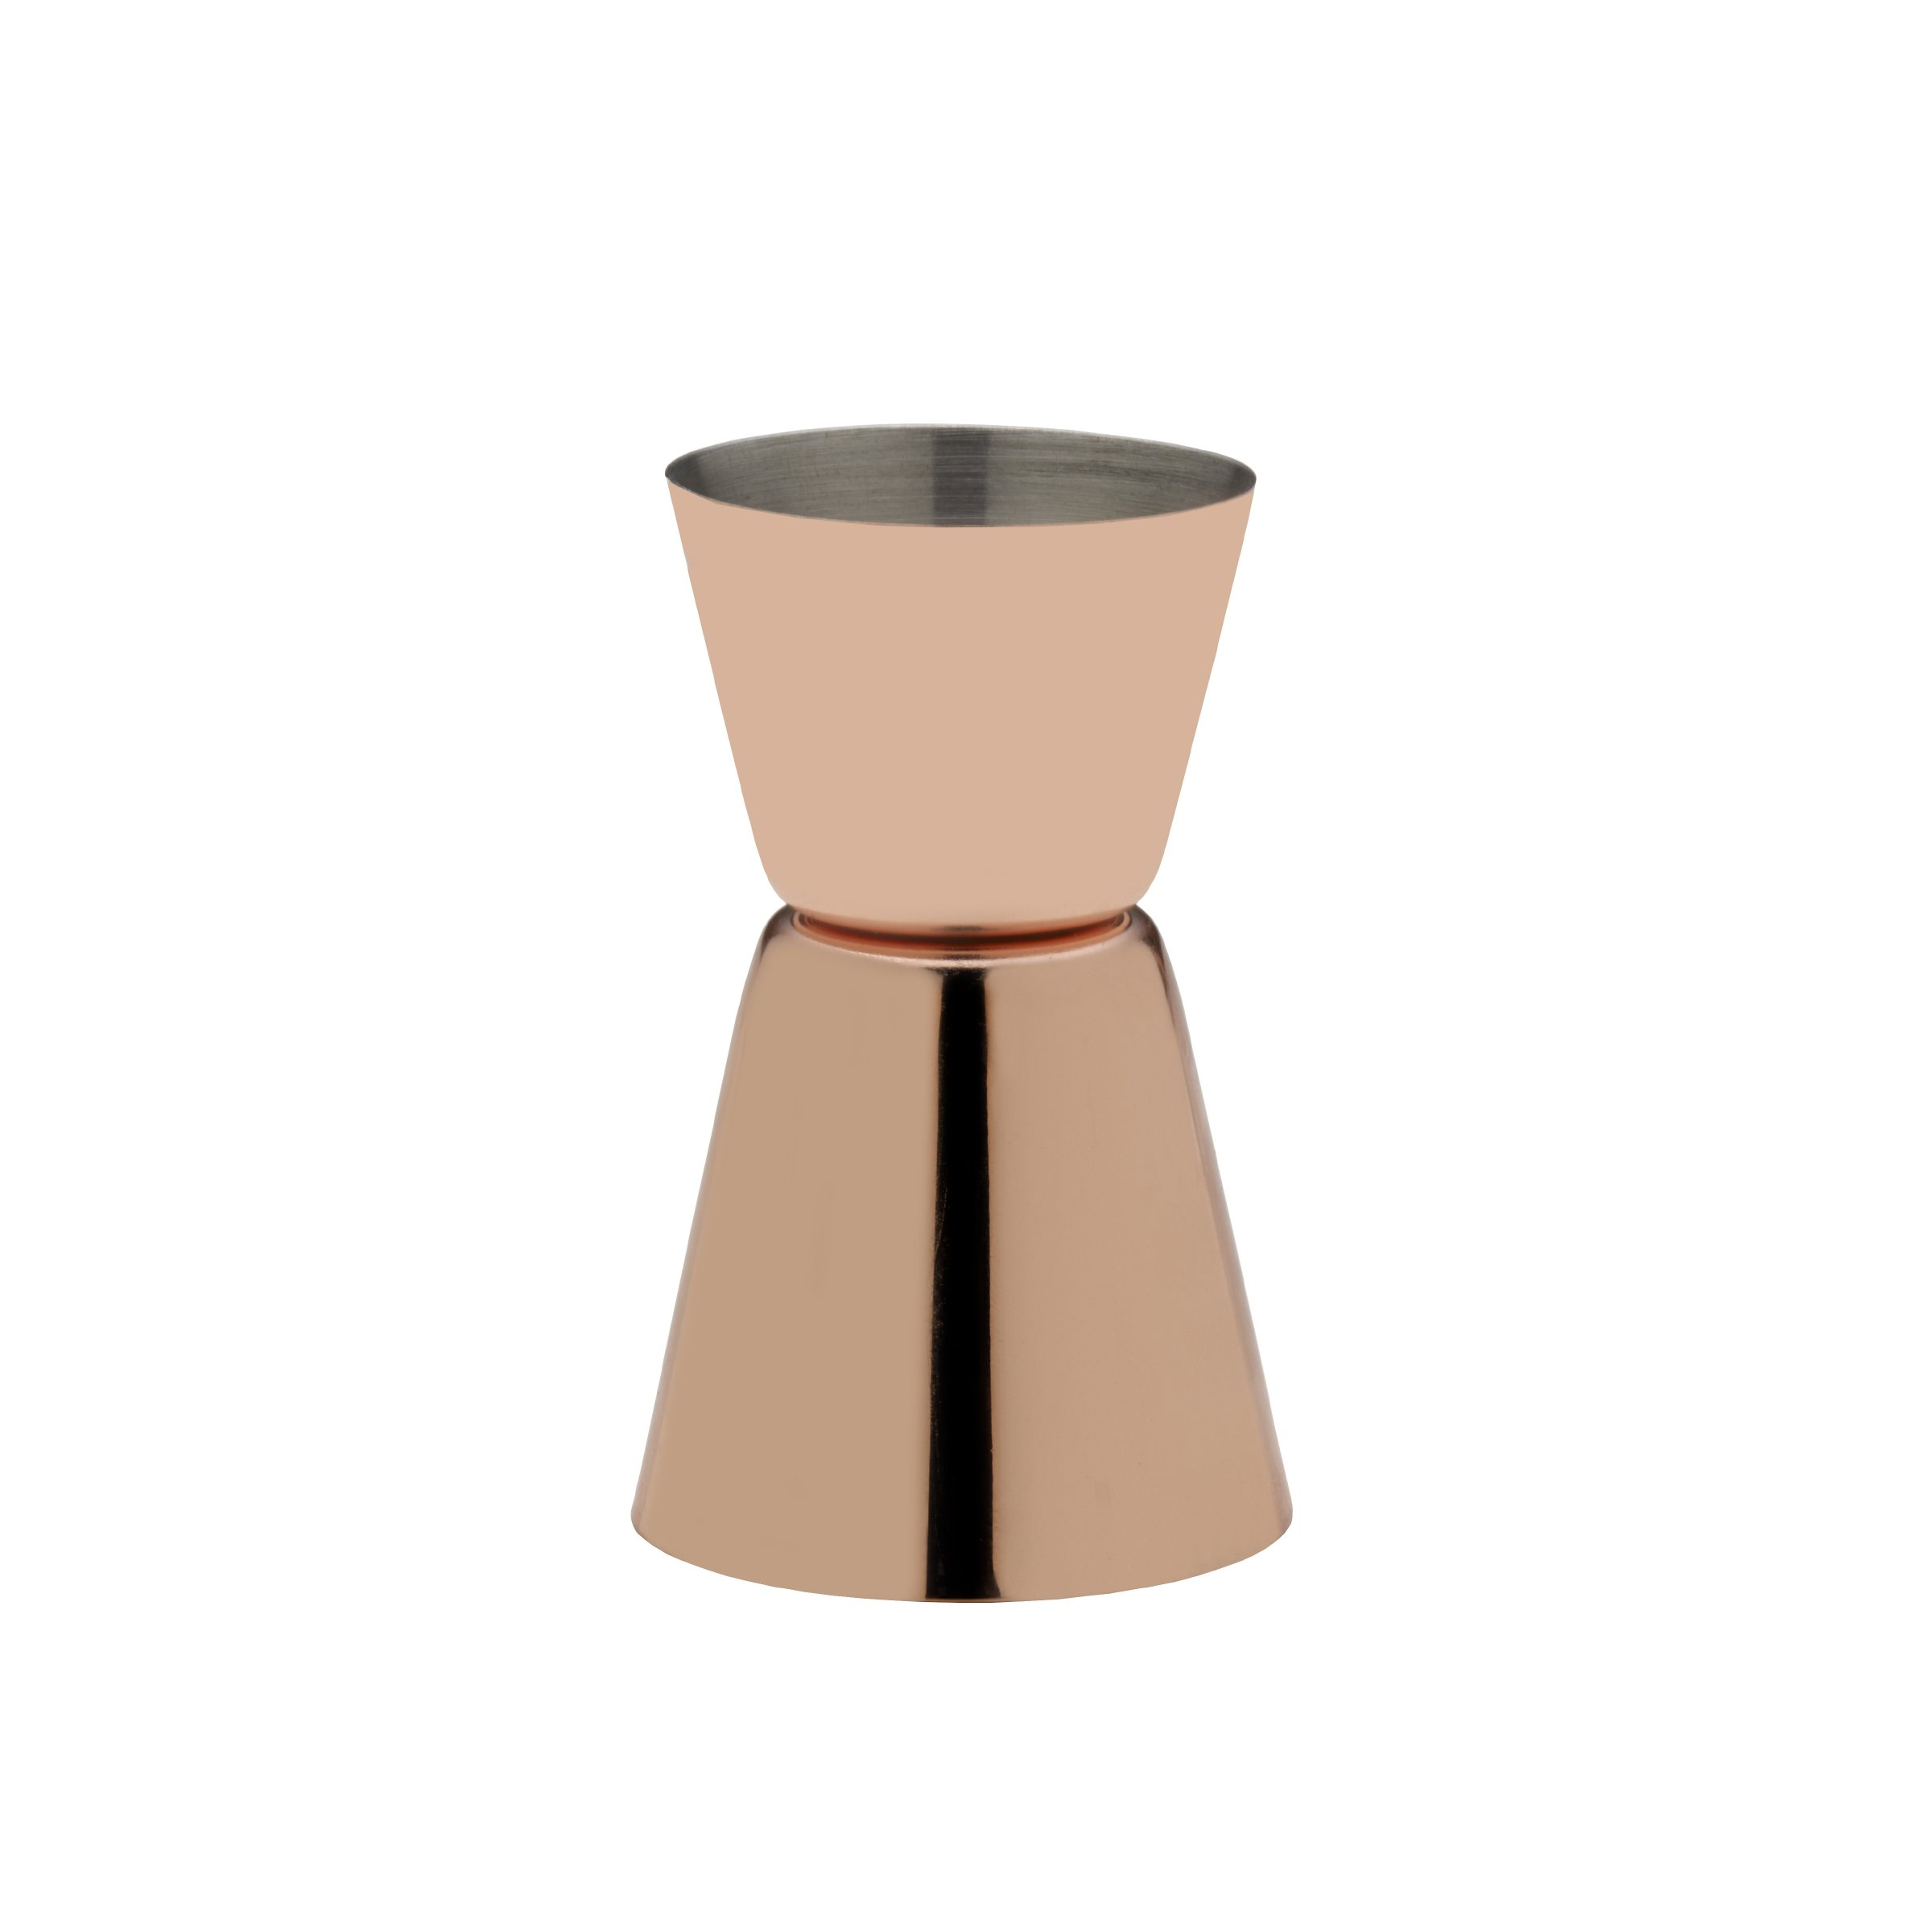 Towle Living Plated Double Jigger, Modernist Copper